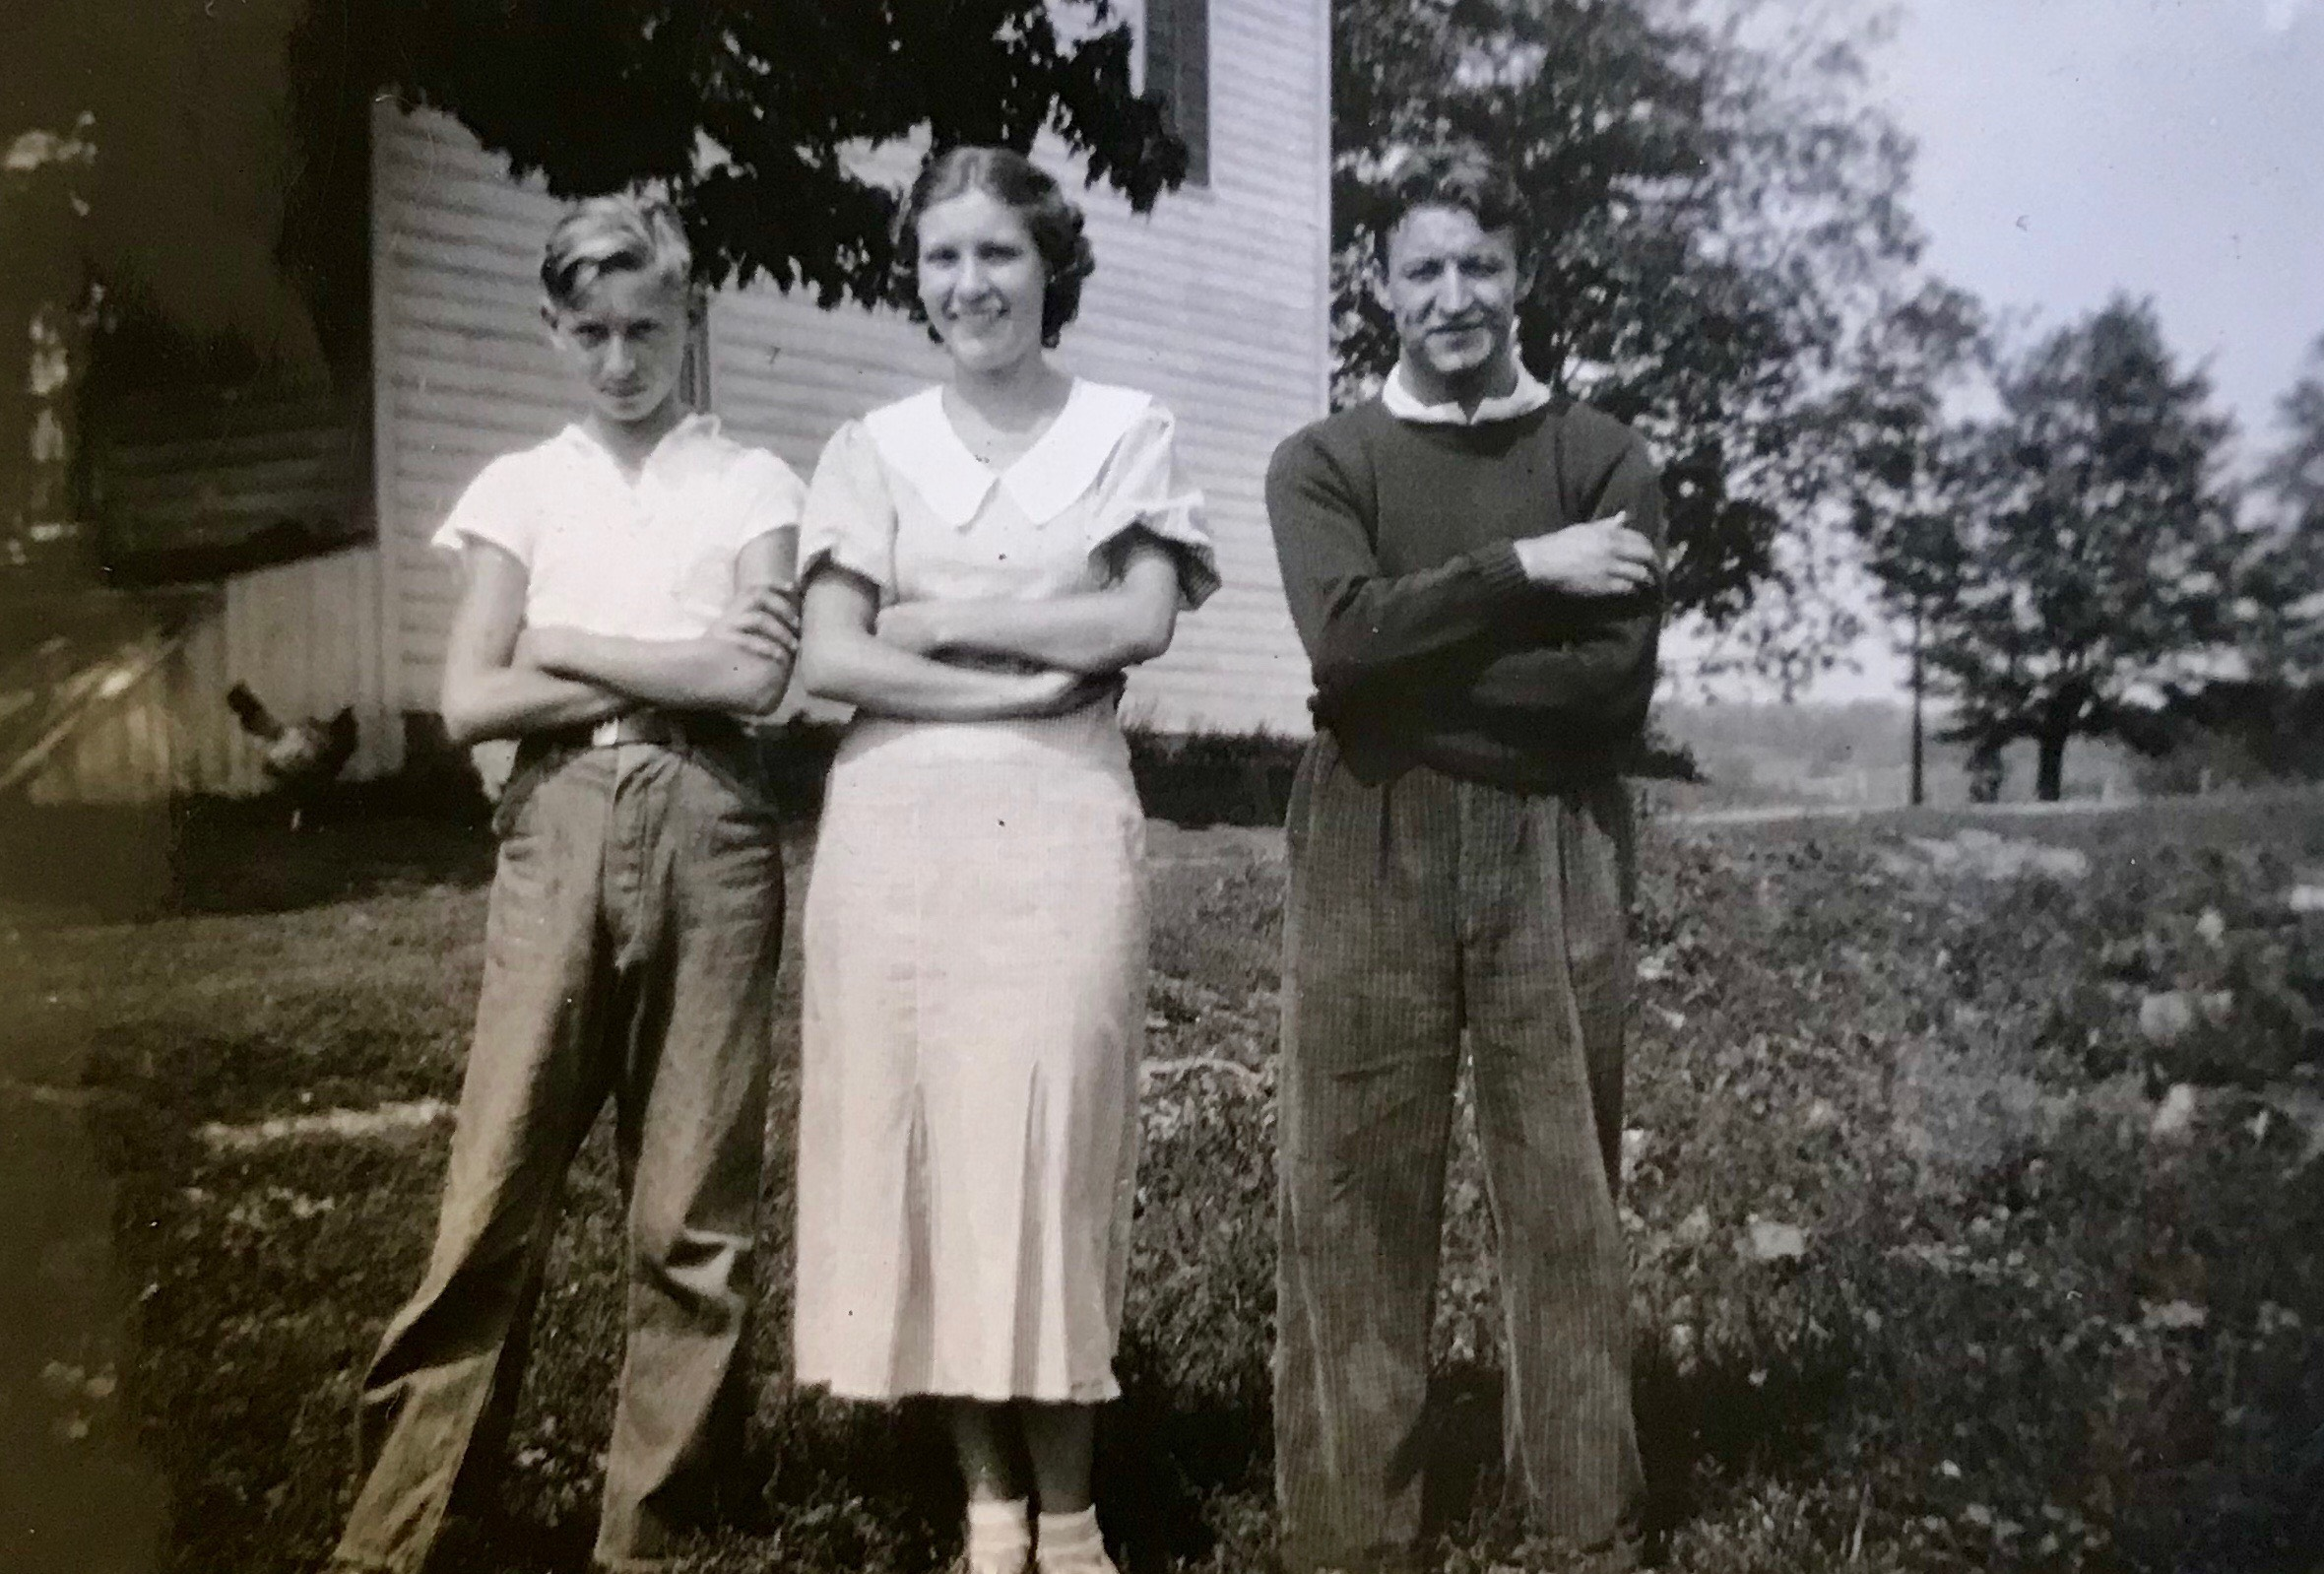 Joseph Zabit (Grandma's step-brother), Ann, and Ray in September 7, 1936